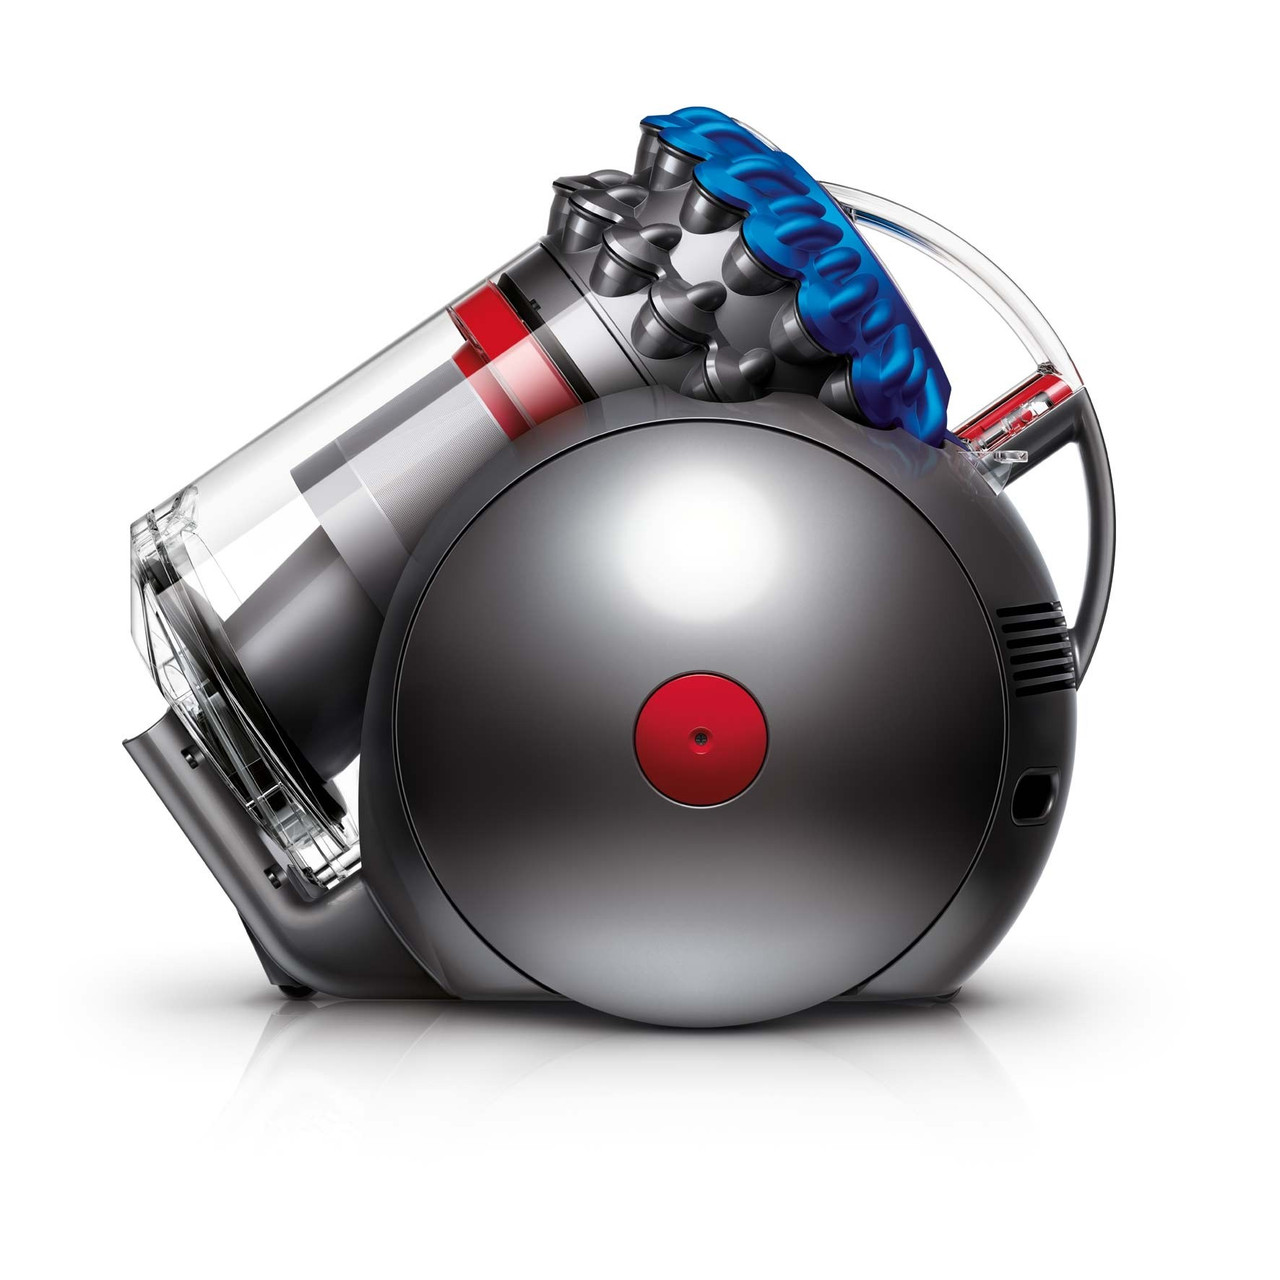 Dyson 281999-01 Big Ball Extra Barrel Bagless Vacuum Cleaner